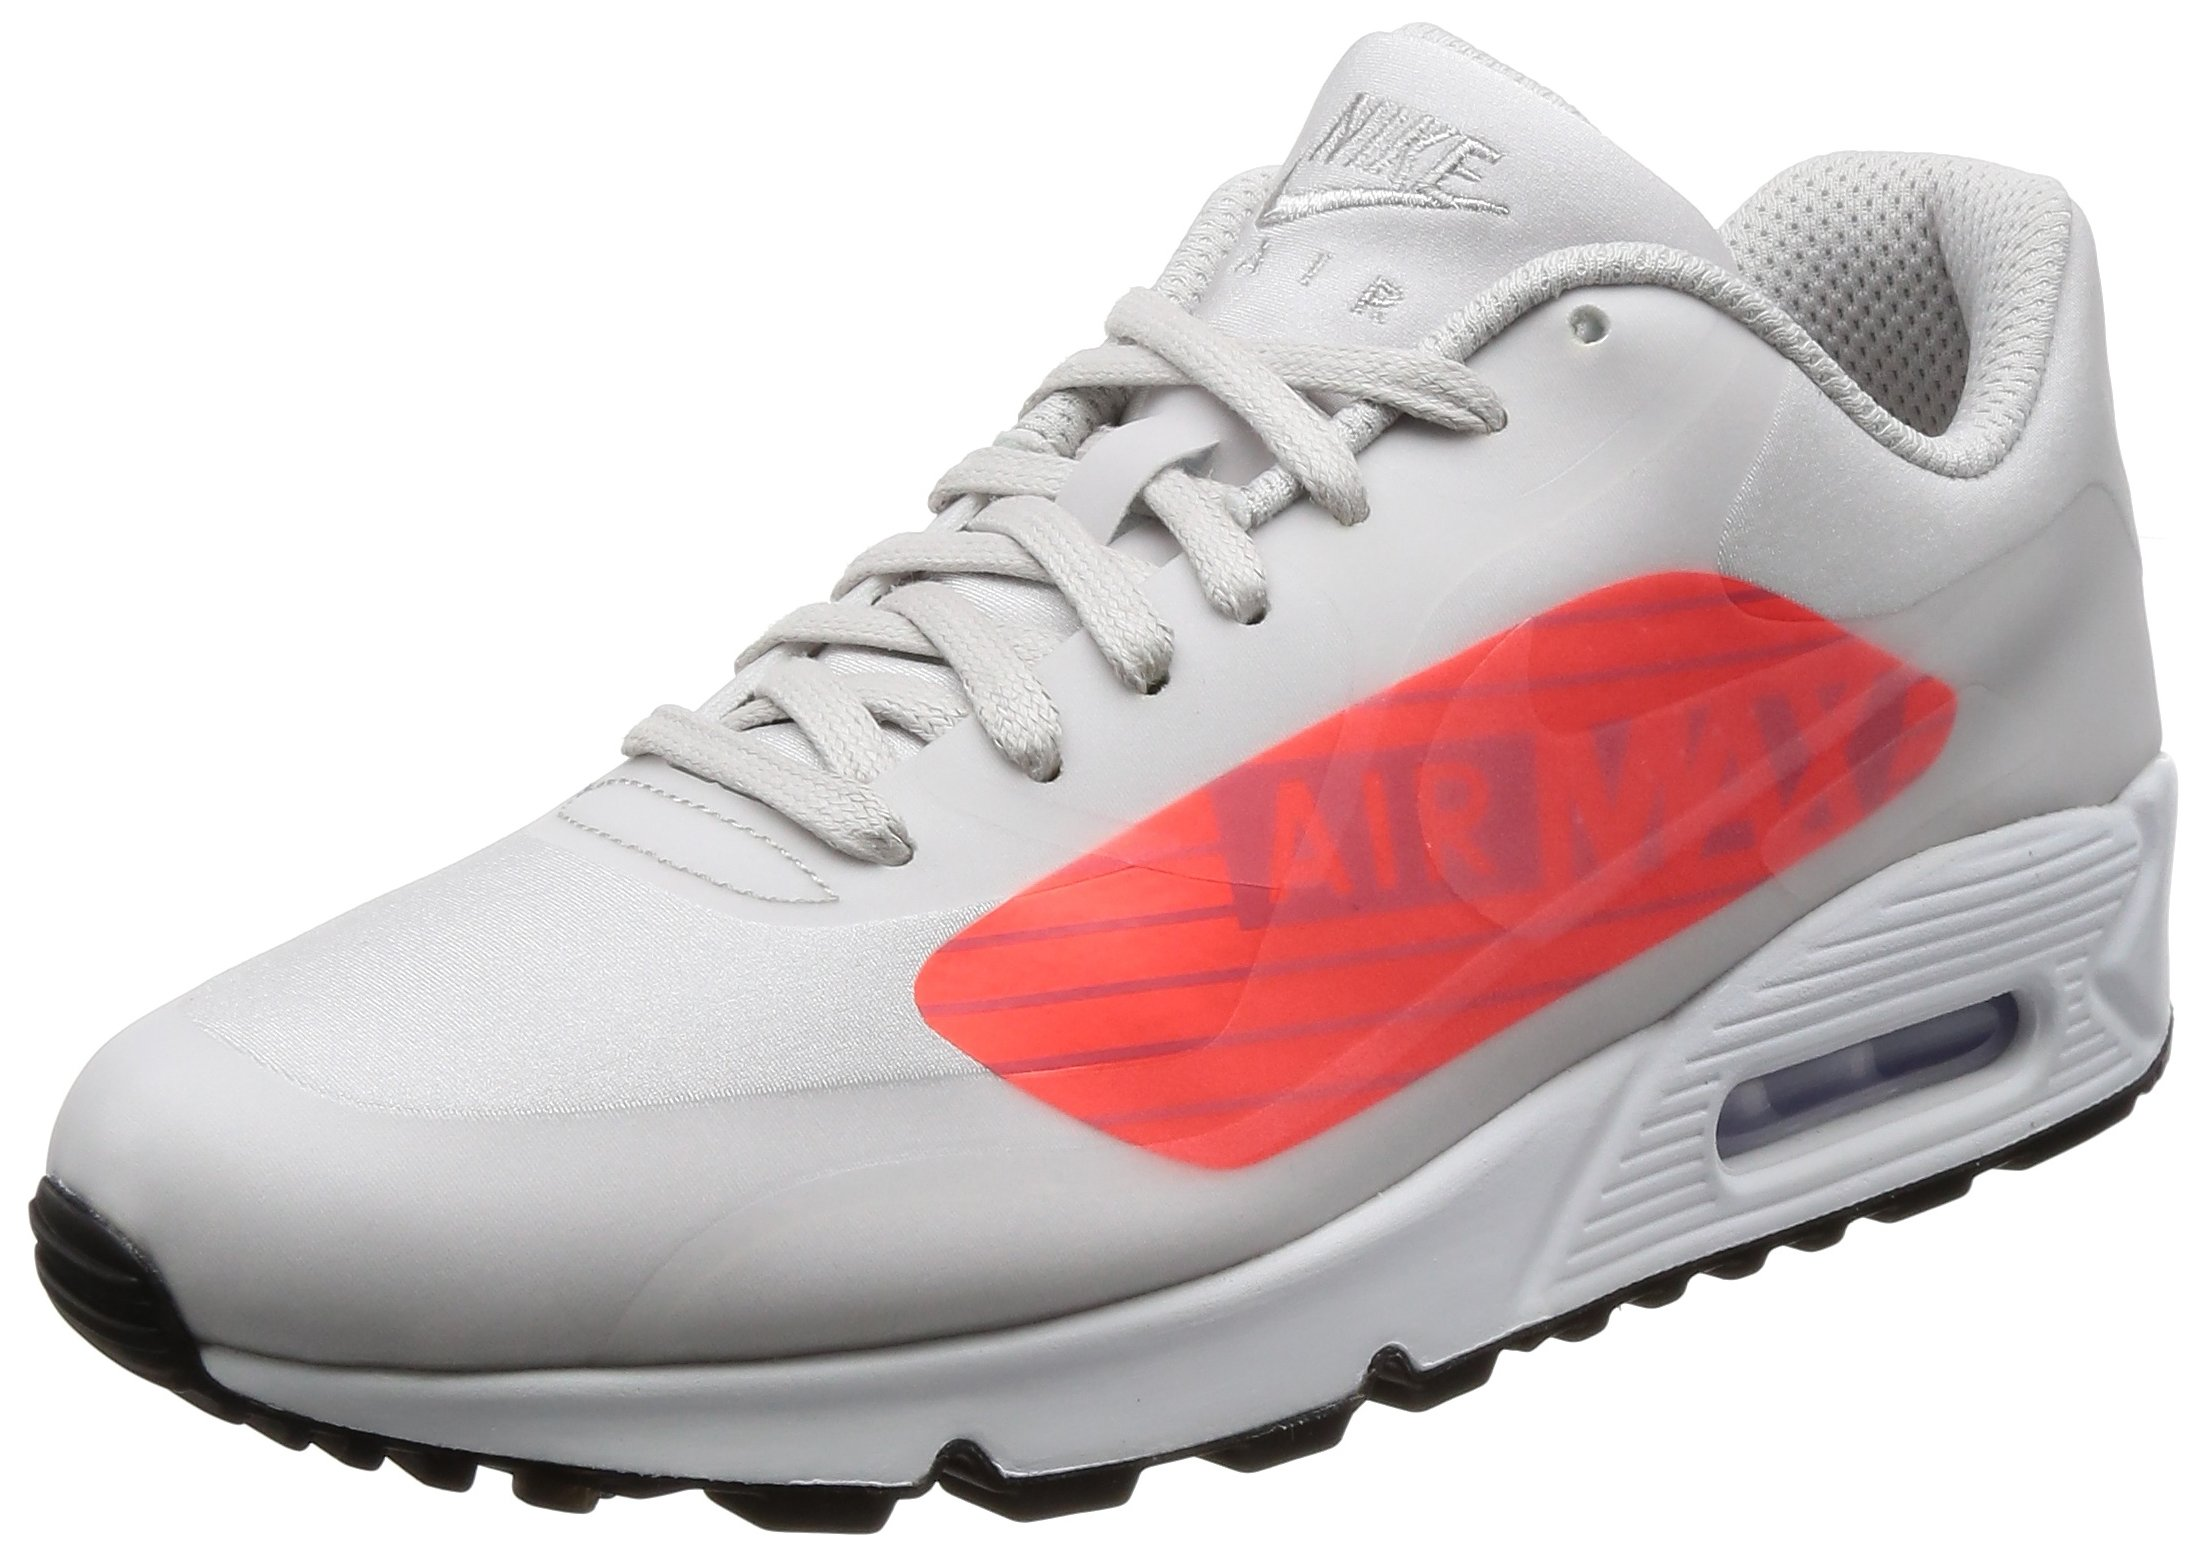 the best attitude 01ad5 a4323 Galleon - NIKE Air Max 90 NS GPX Mens Running Trainers AJ7182 Sneakers Shoes  (UK 6 US 7 EU 40, Neutral Grey Bright Crimson 001)